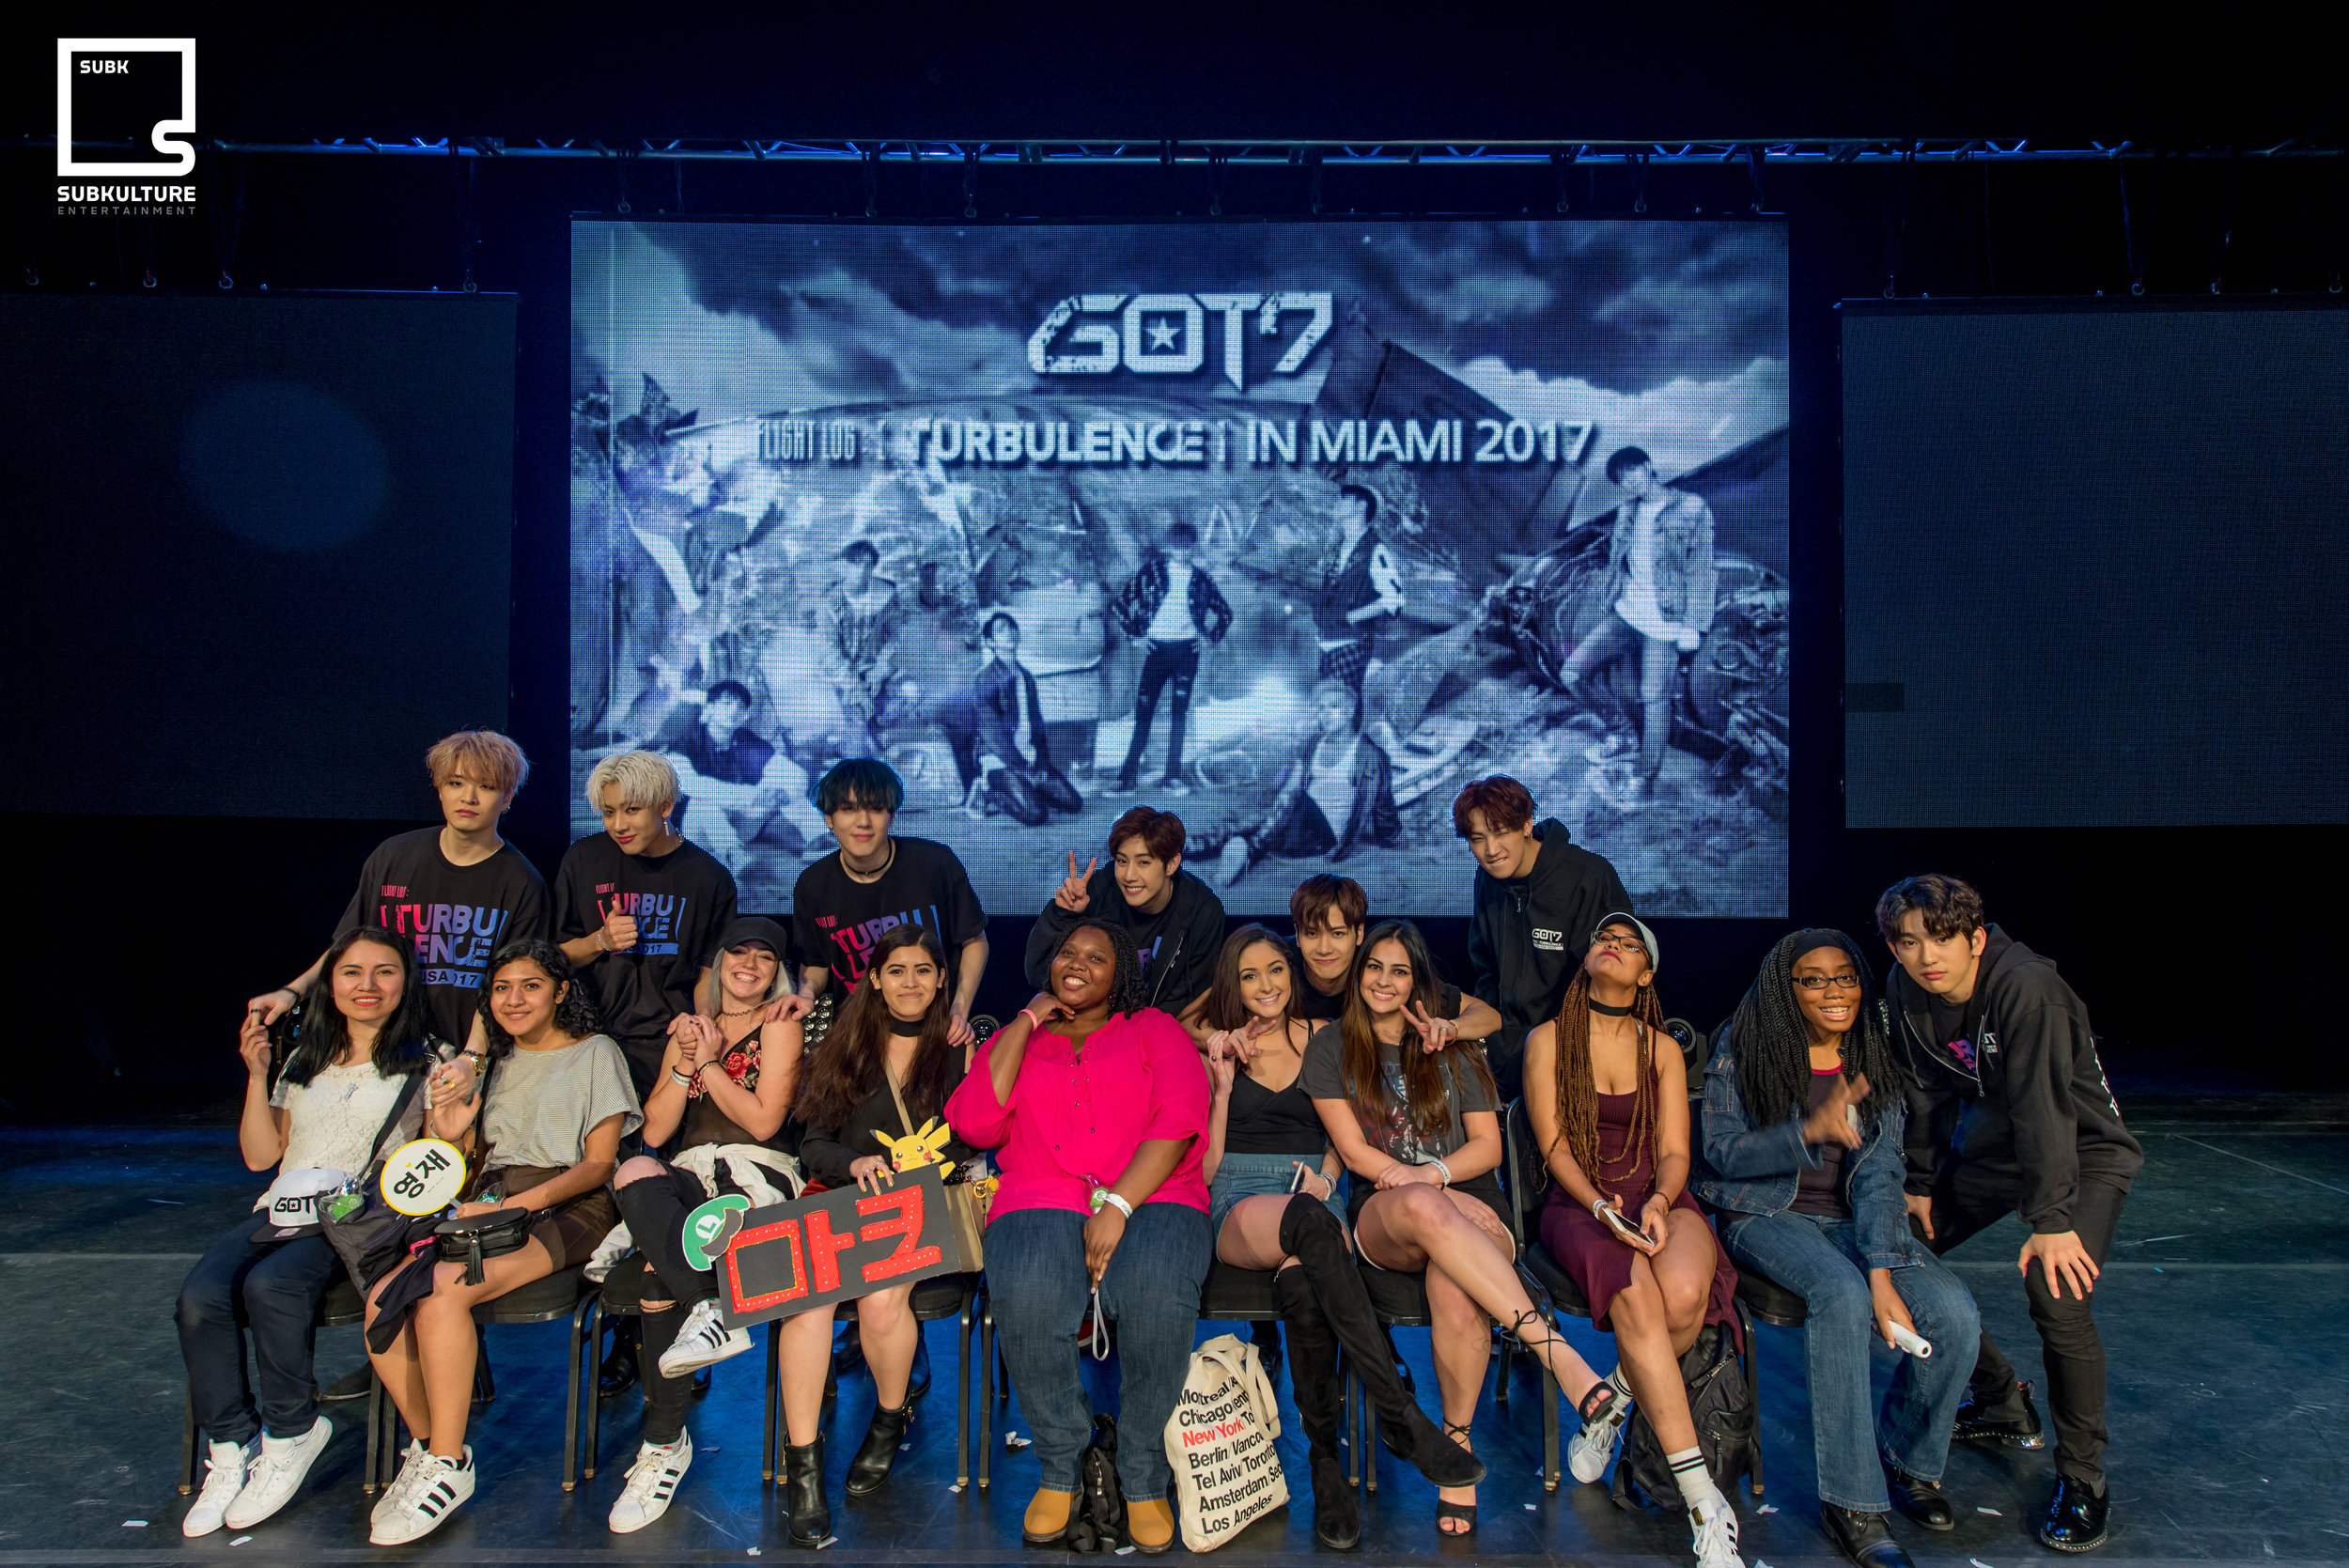 GOT7 Fan Photos Miami -1161 copy.jpg